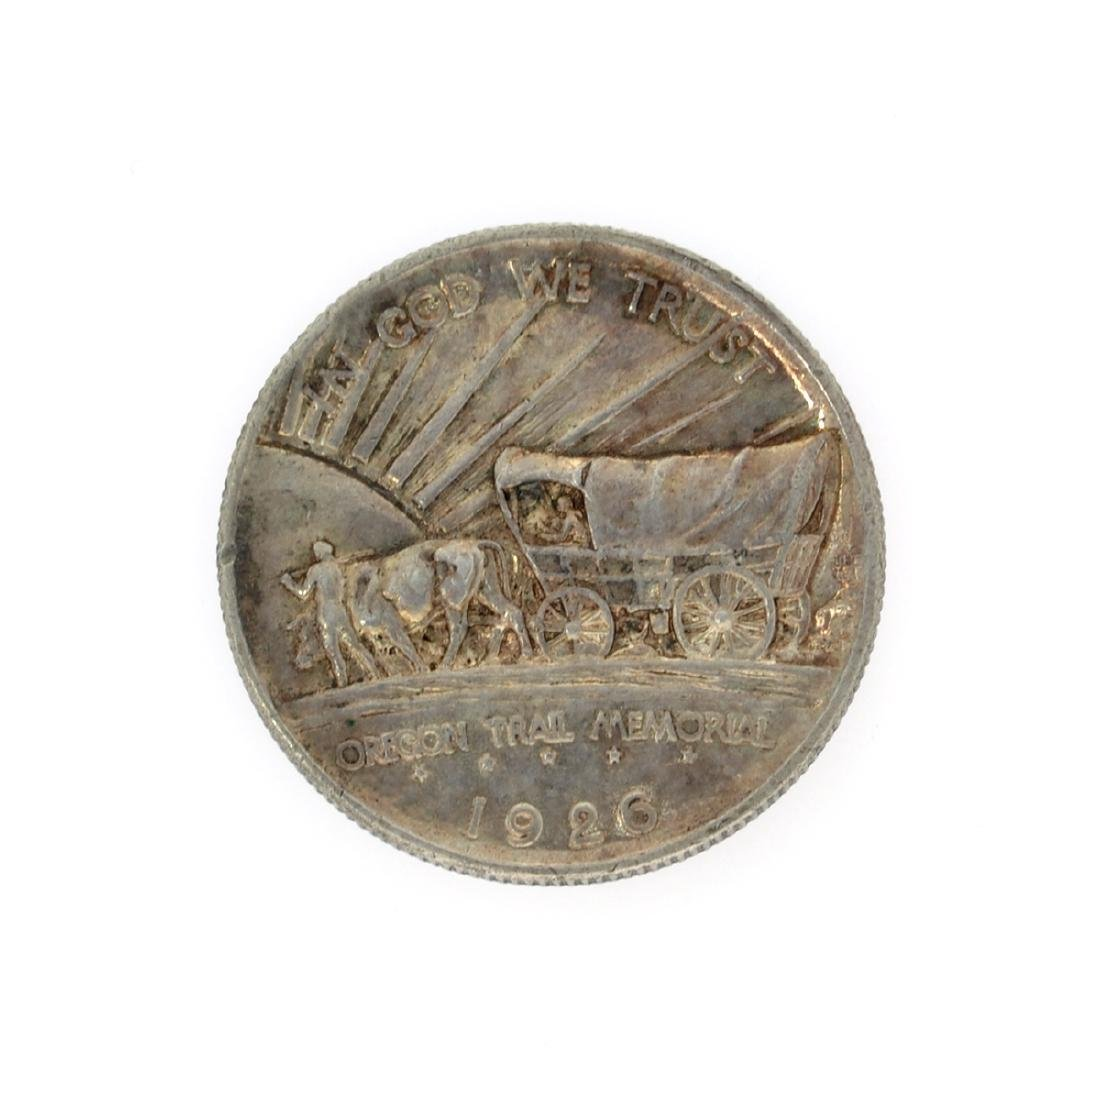 Rare 1926 Oregon Trail Memorial Half Dollar Coin